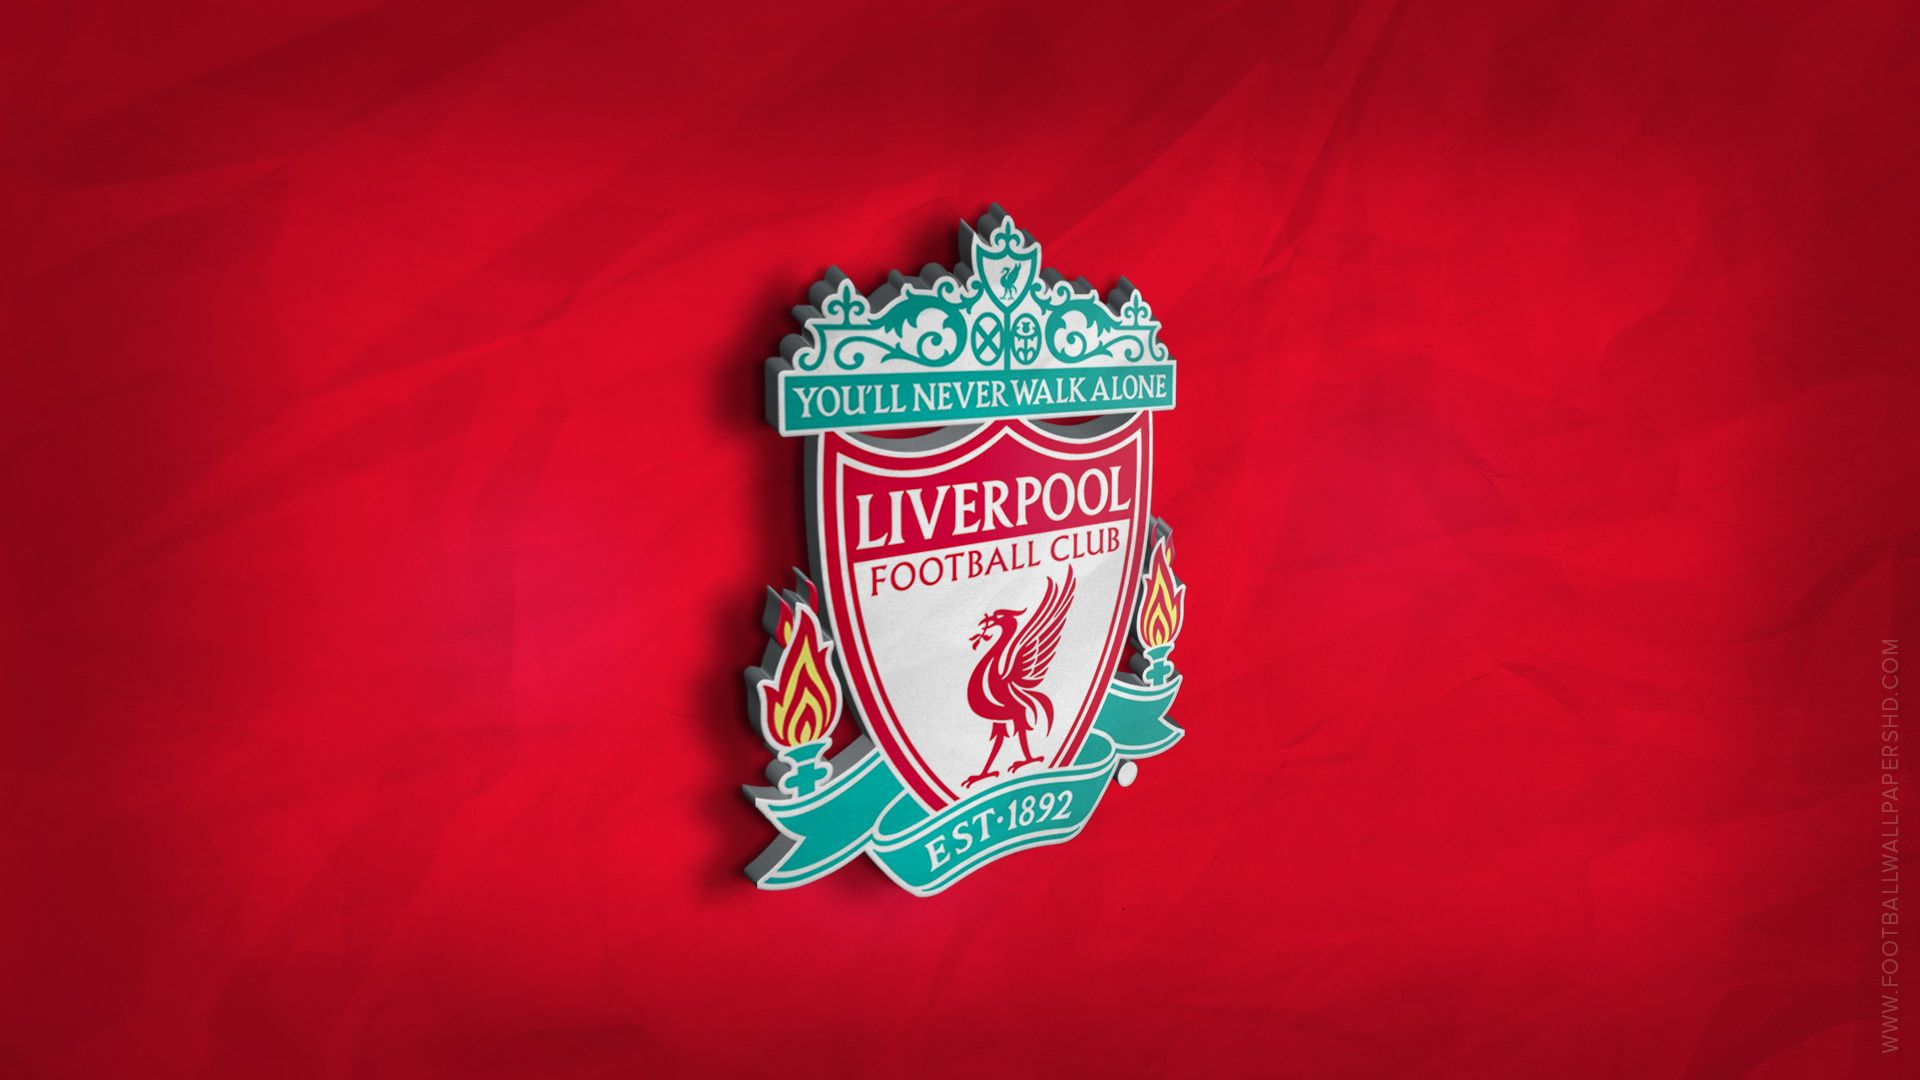 LIVERPOOL FC HD WALLPAPERS HD WALL CENTRAL 1920x1080